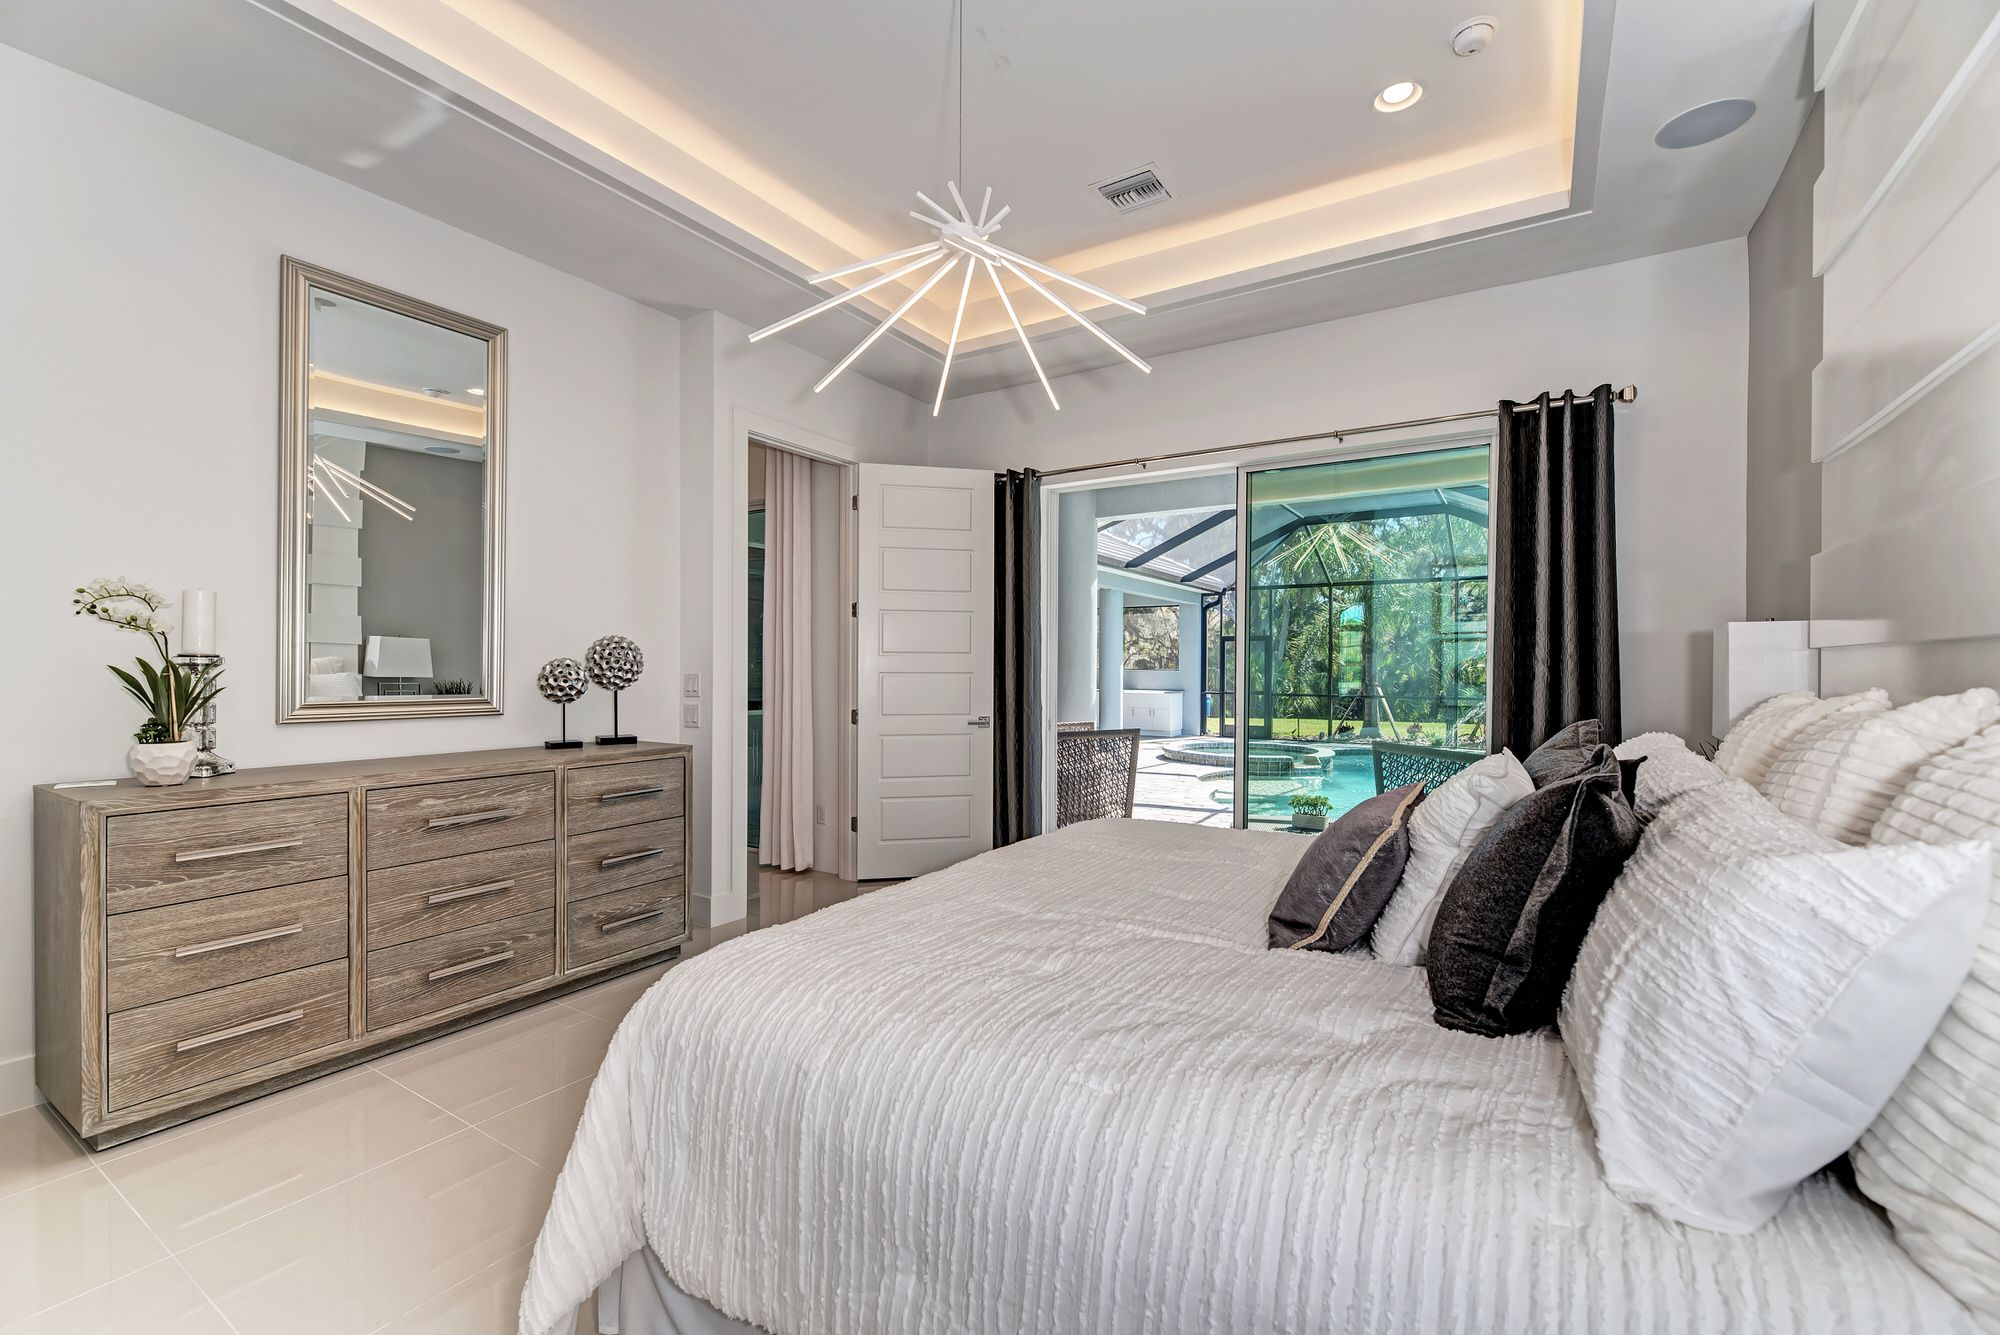 Bedroom featured in the Barbados 2800-The Reserve By Medallion Home in Sarasota-Bradenton, FL